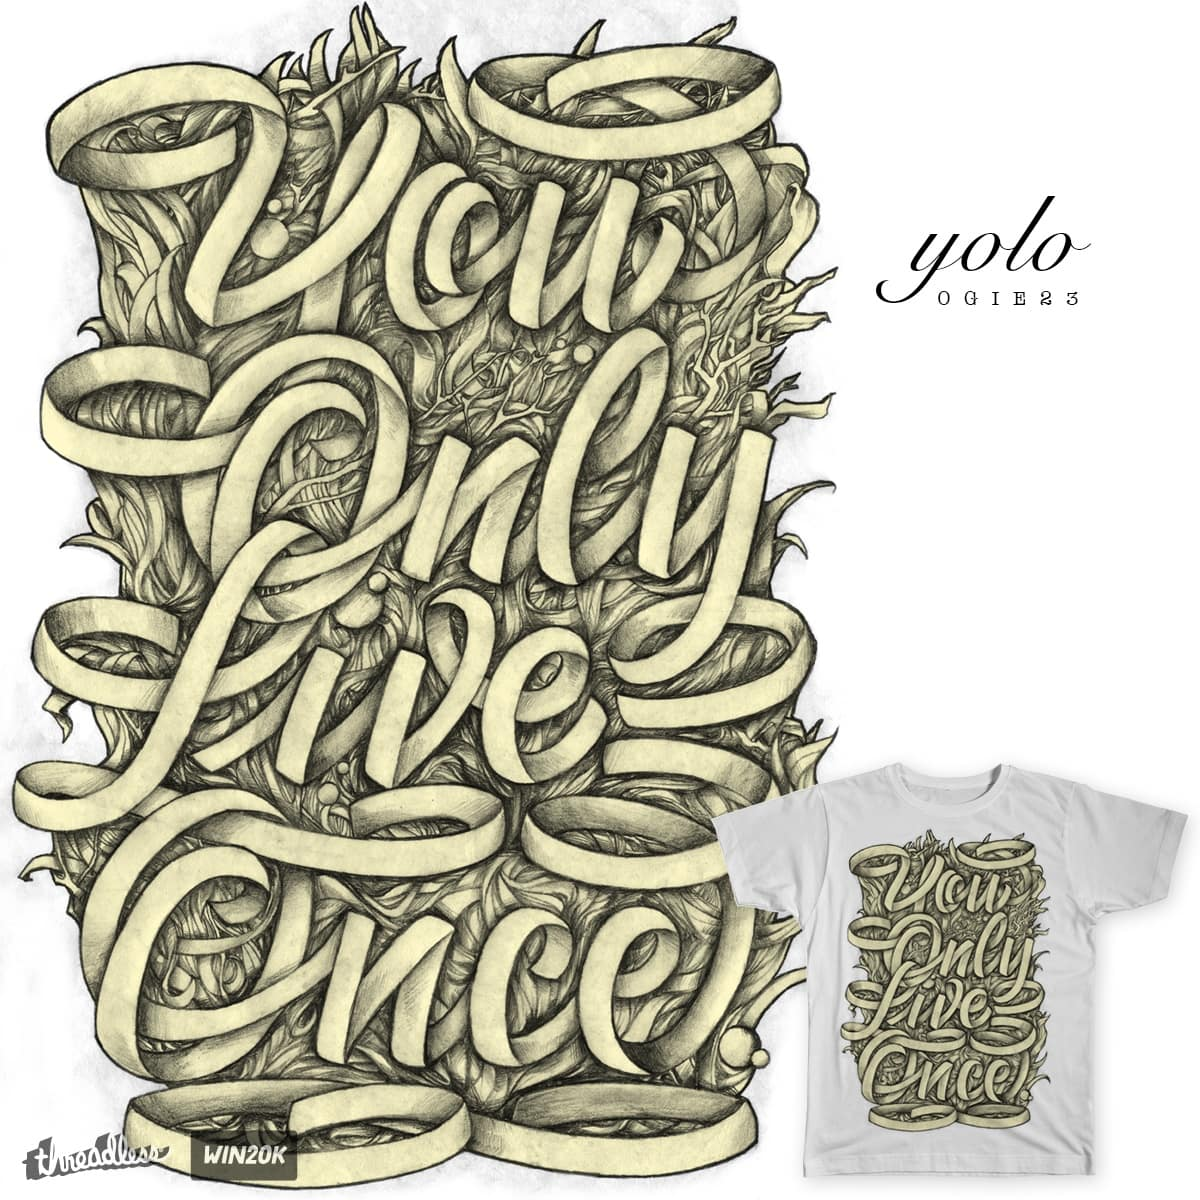 YOLO by RGRLV on Threadless